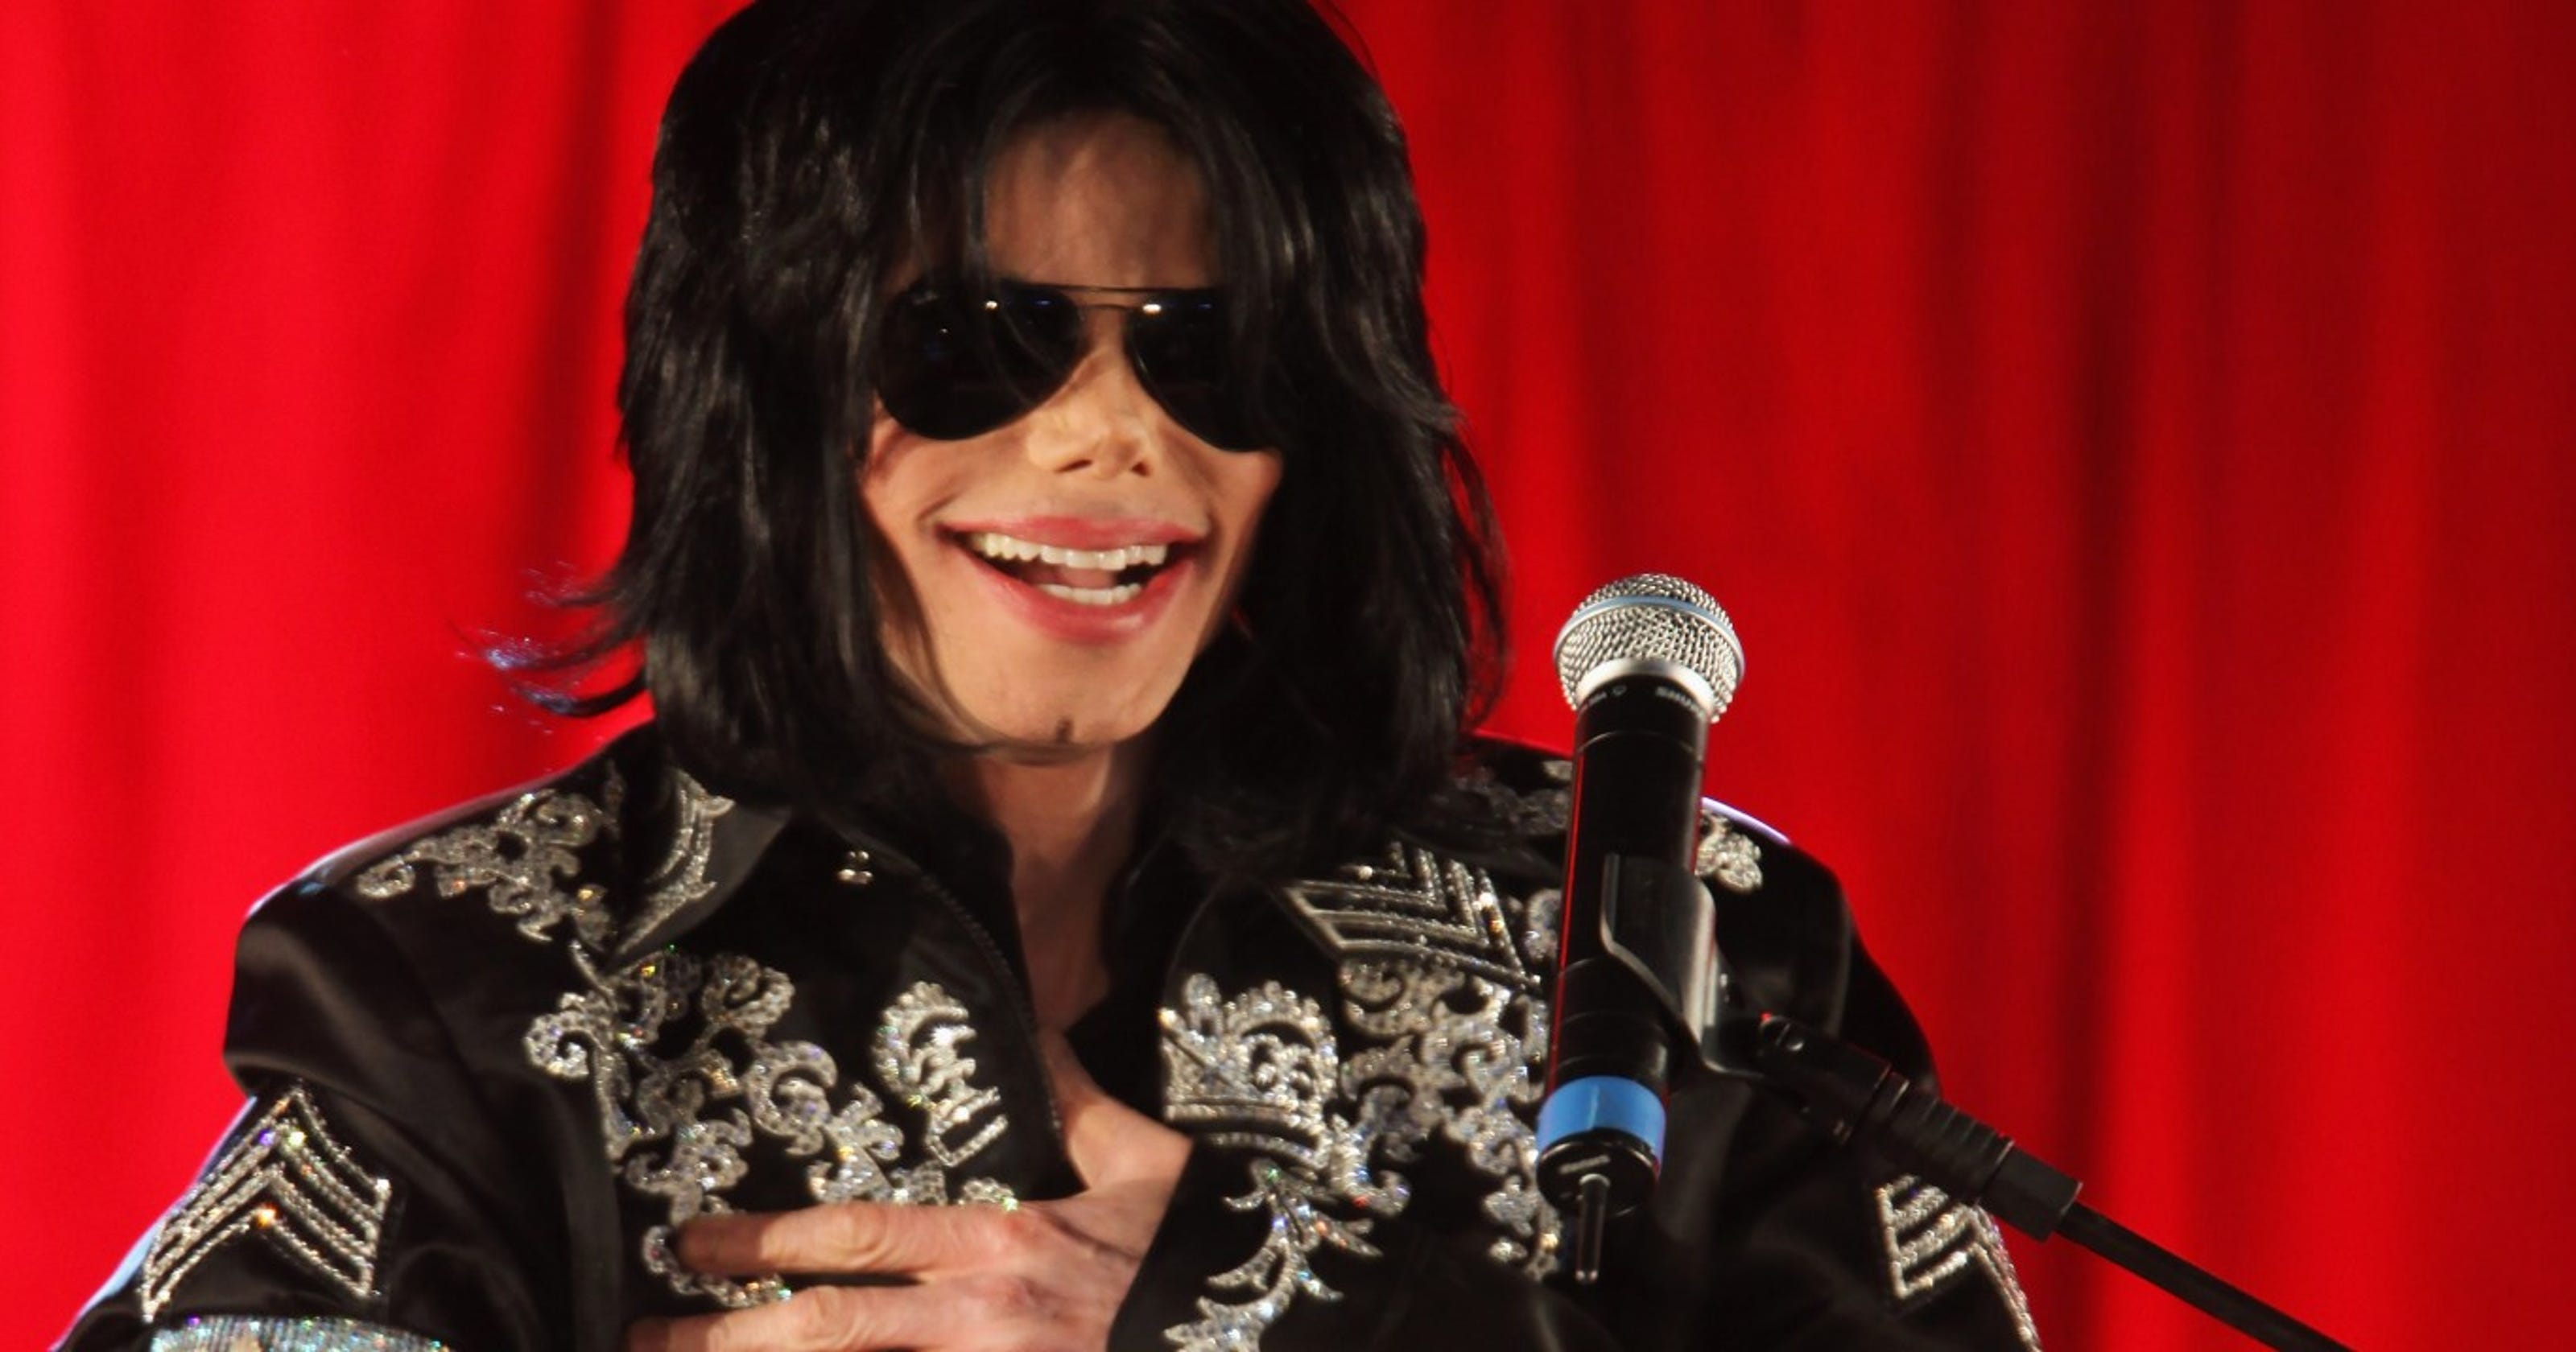 Michael Jackson's will is lost, former publicist says. She asks Trump for help